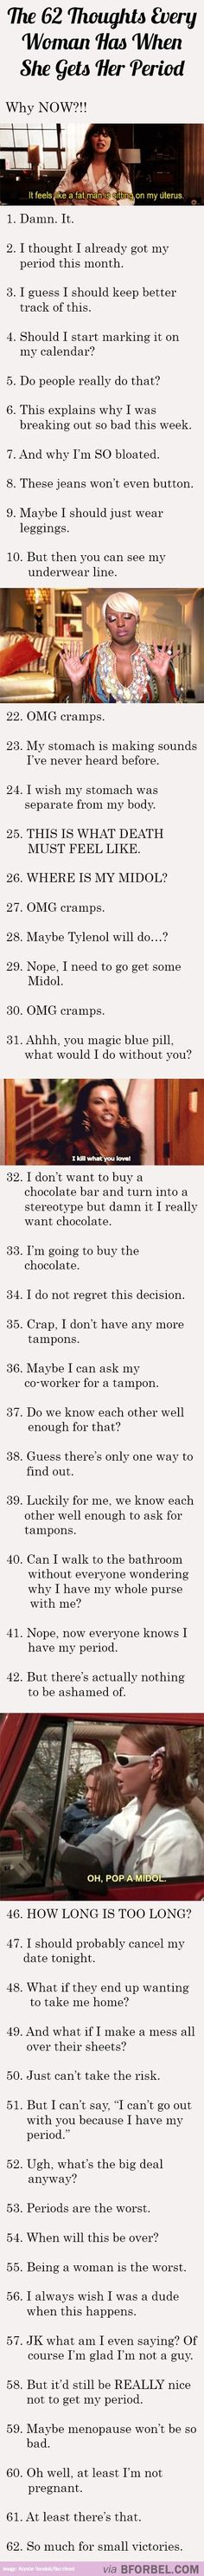 62 Thoughts Women Have When They're On Their Period…   Seriously, For Real?Seriously, For Real?